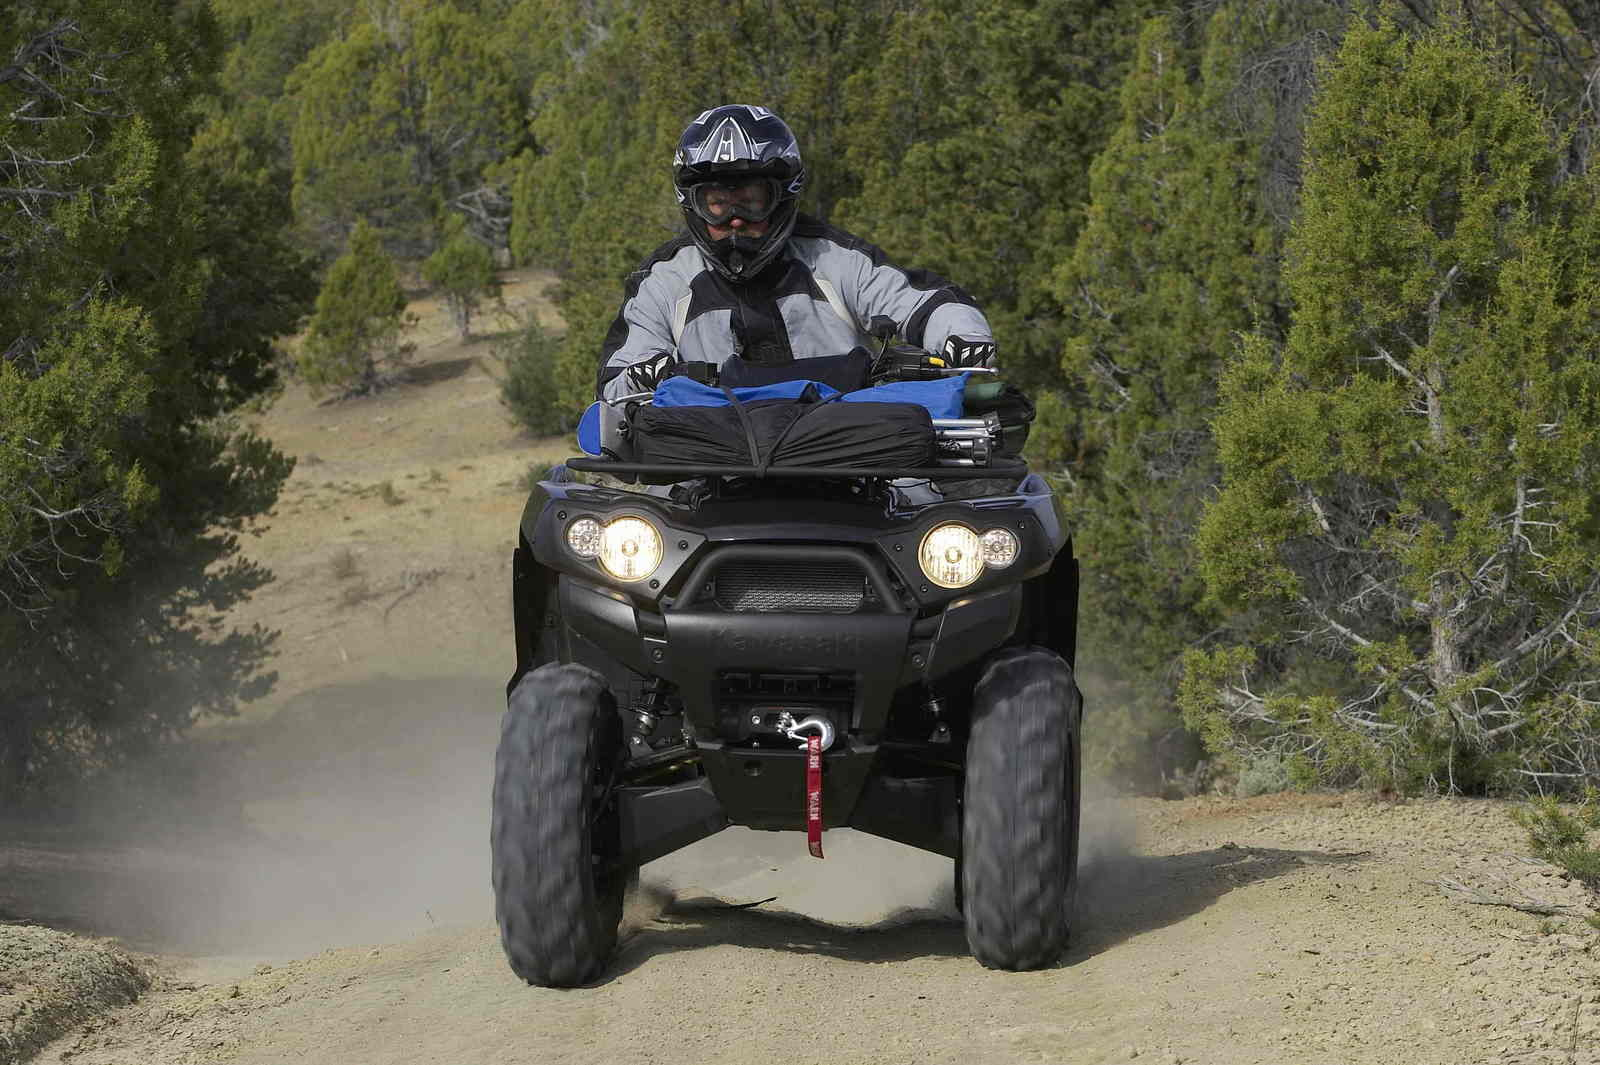 2007 kawasaki brute force 750 4x4i picture 158888 motorcycle review top speed. Black Bedroom Furniture Sets. Home Design Ideas